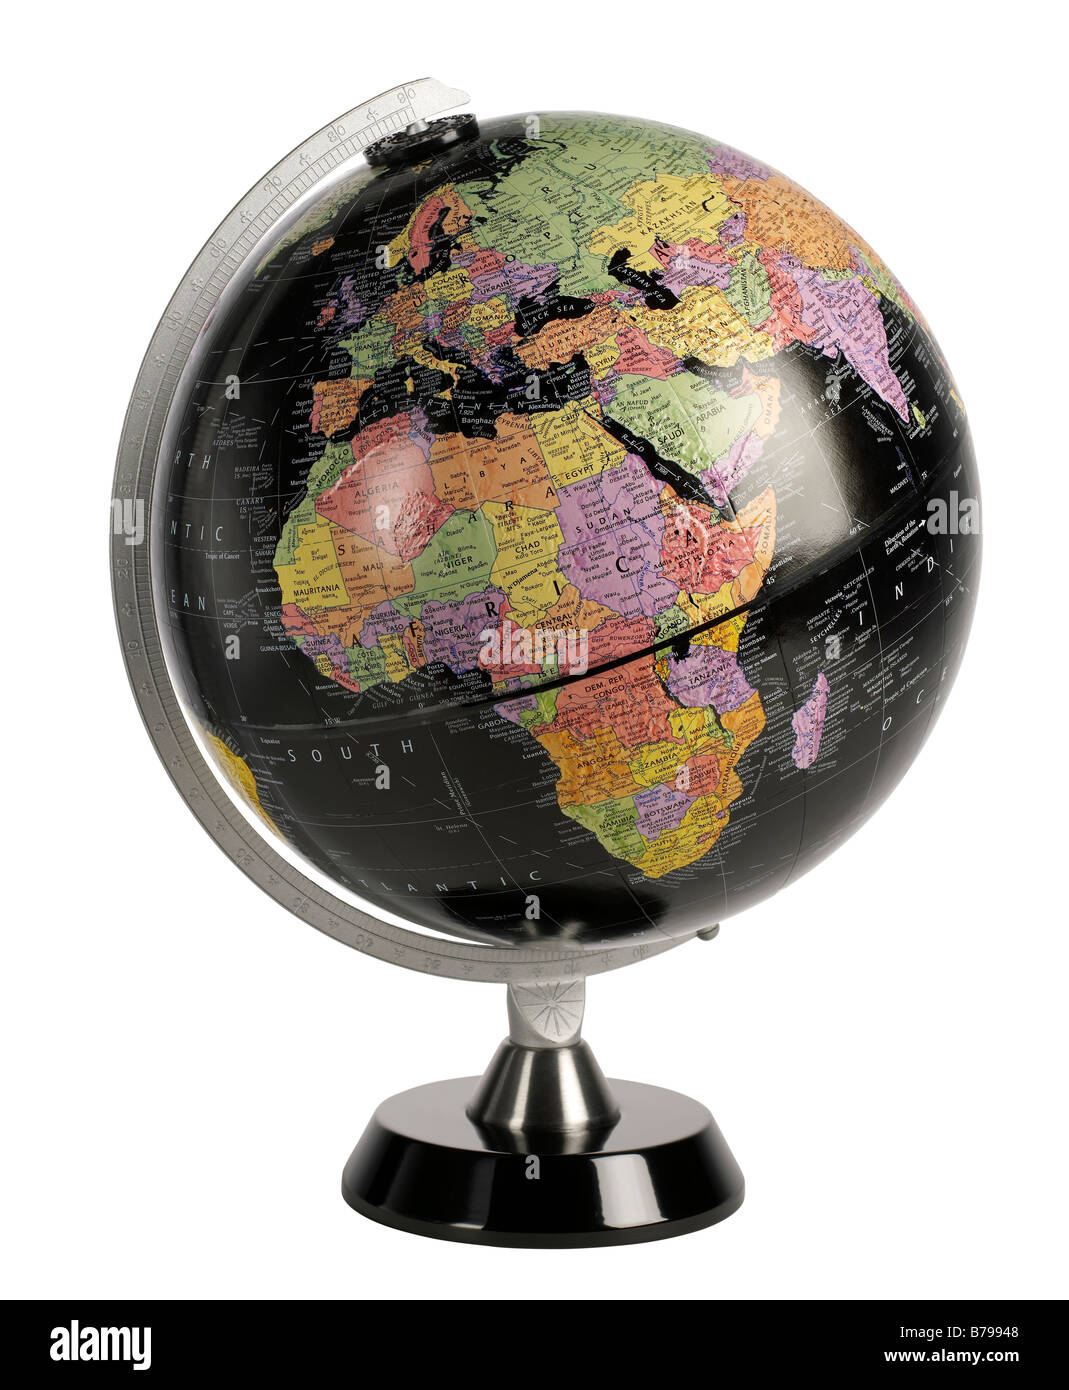 World map black and white countries stock photos world map black black world globe stock image gumiabroncs Image collections